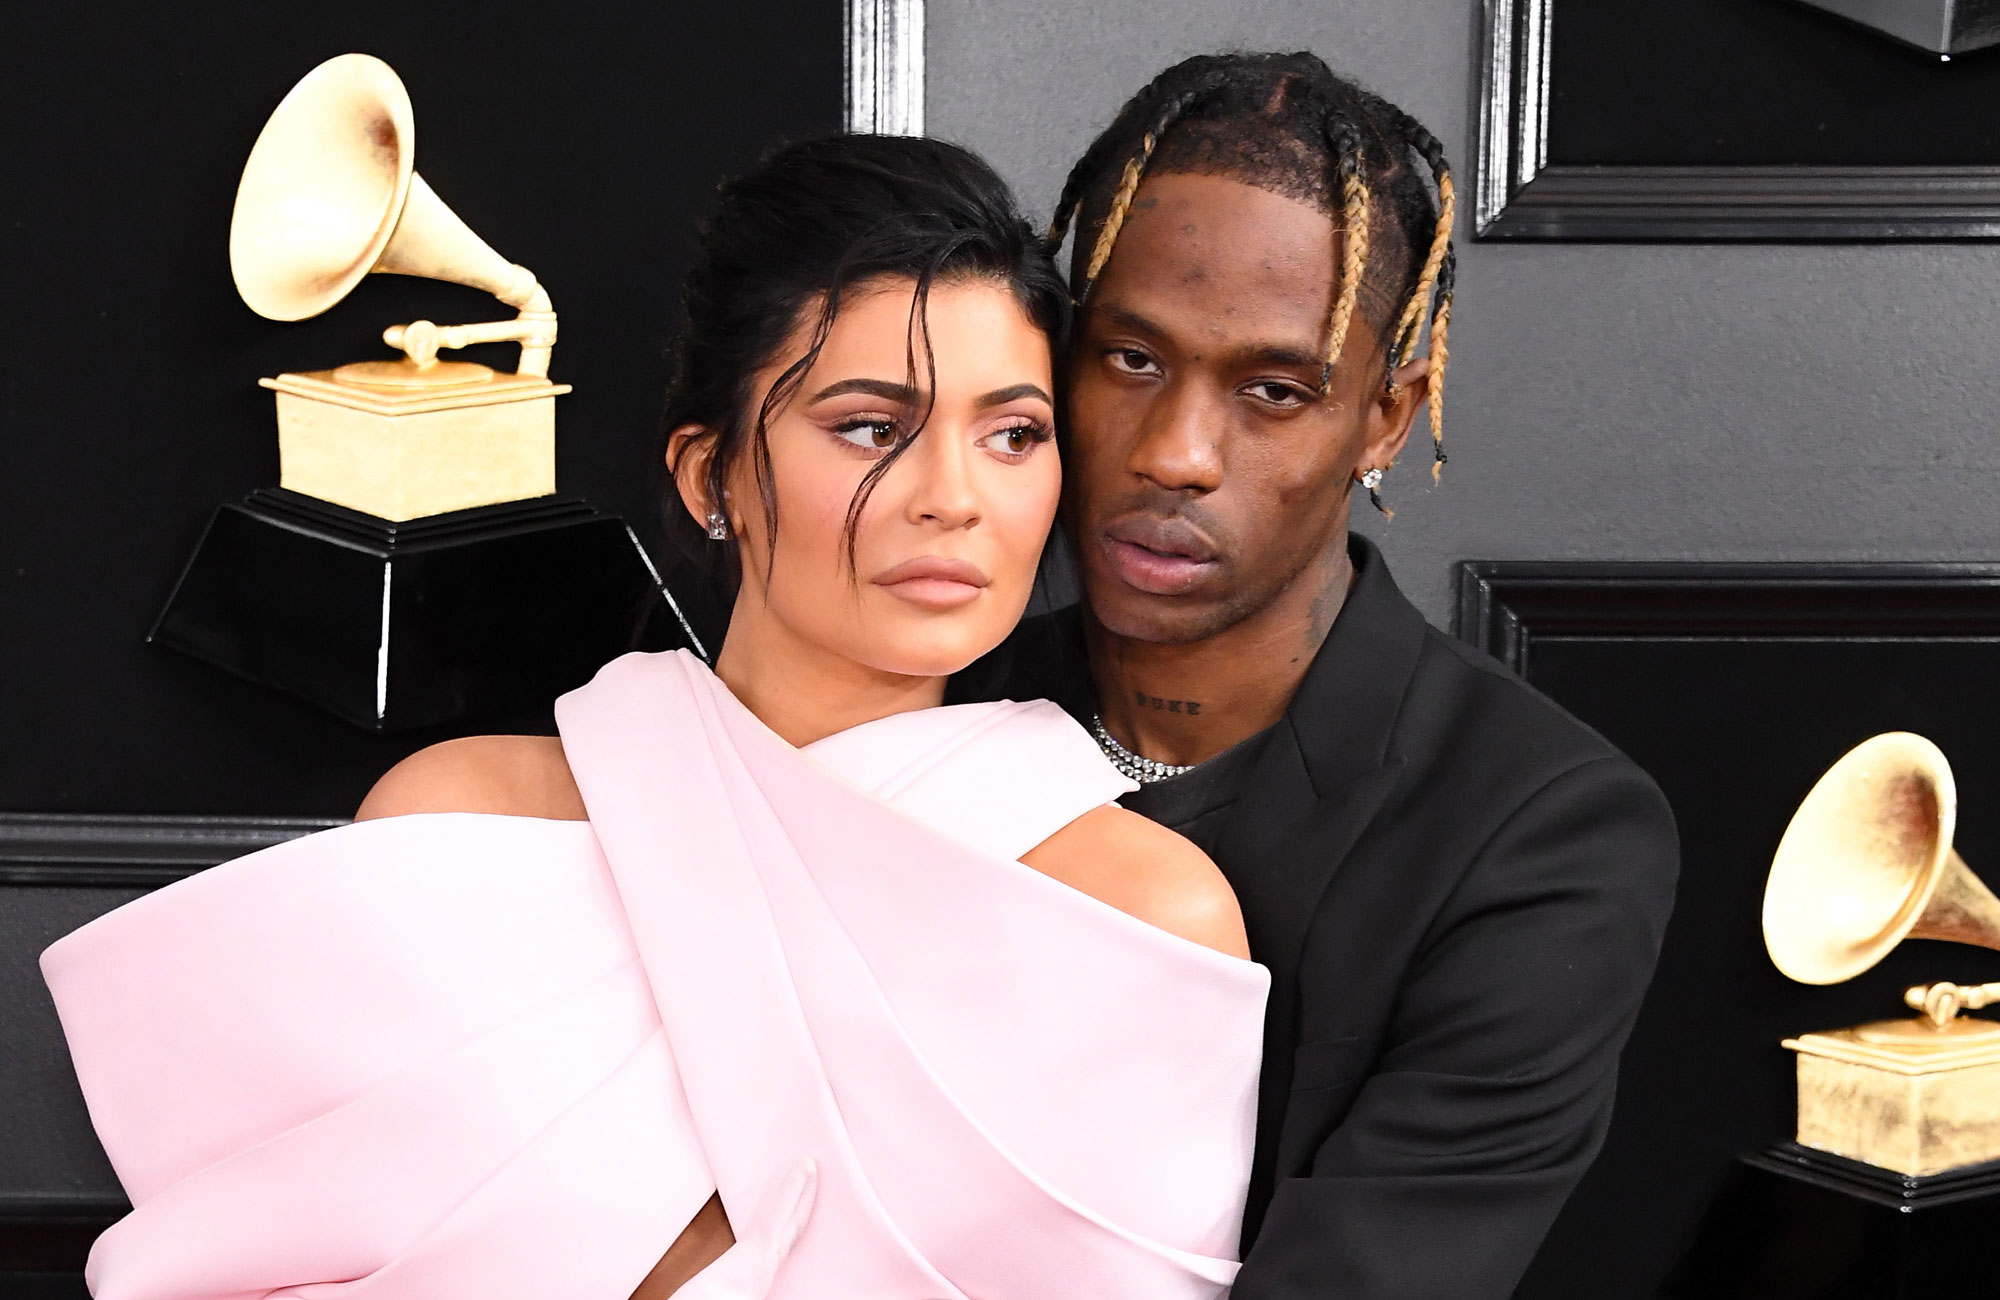 Kylie Doesn't Feel Like She Has Watch Over Travis - Kylie Jenner and Travis Scott arrives at the 61st Annual GRAMMY Awards at Staples Center on February 10, 2019 in Los Angeles, California.